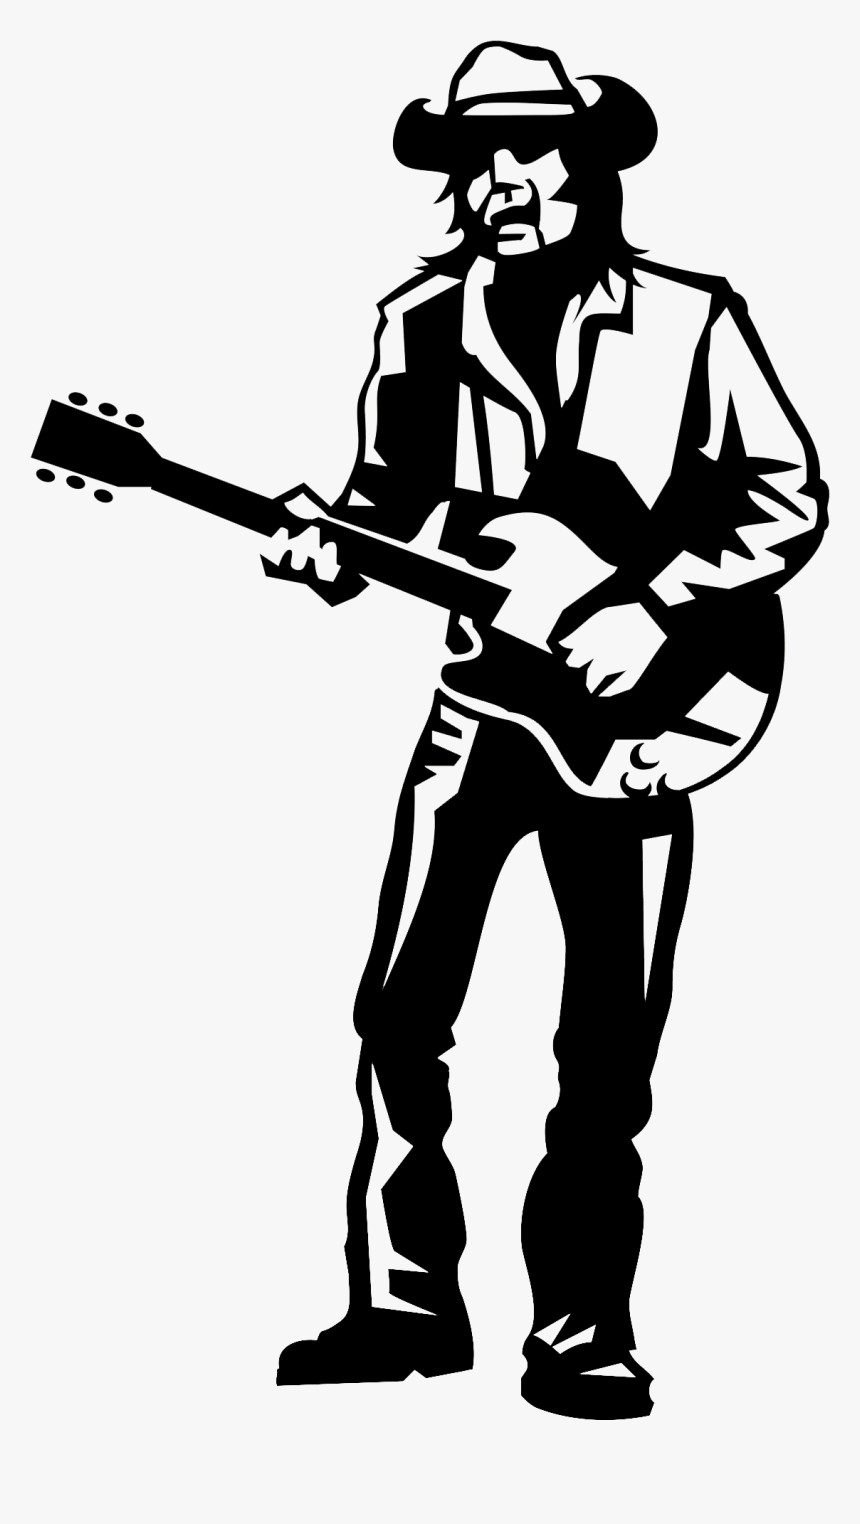 man with guitar silhouette band silhouette man with guitar silhouette hd png with man silhouette guitar